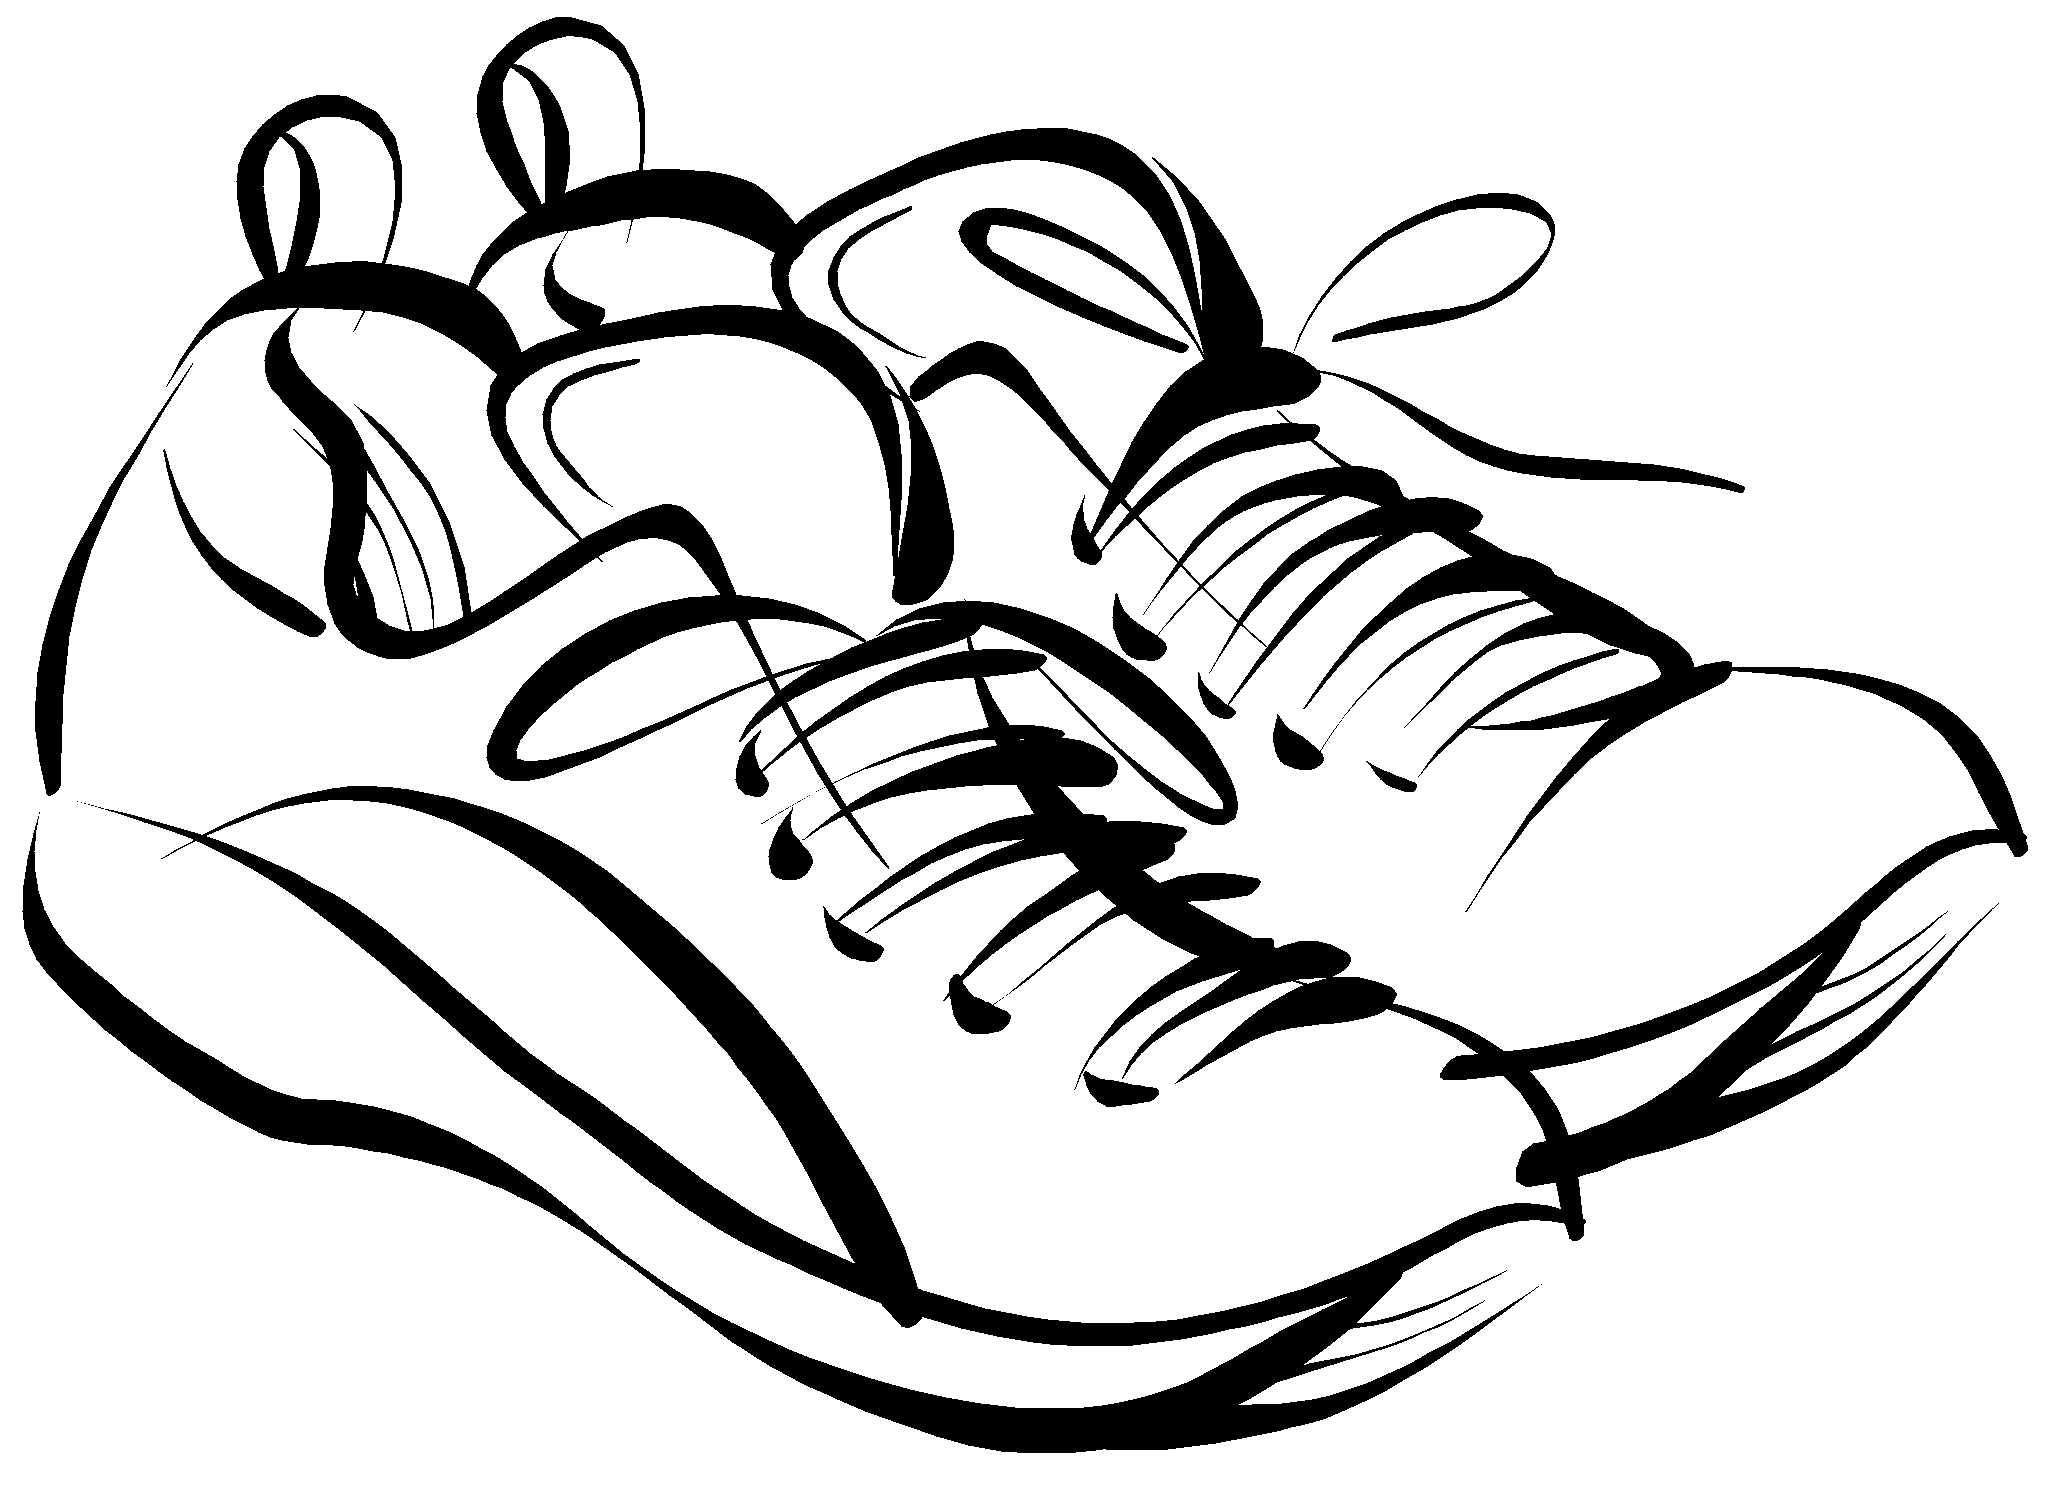 Running Shoes Drawing Clipart Panda Free Clipart Images.